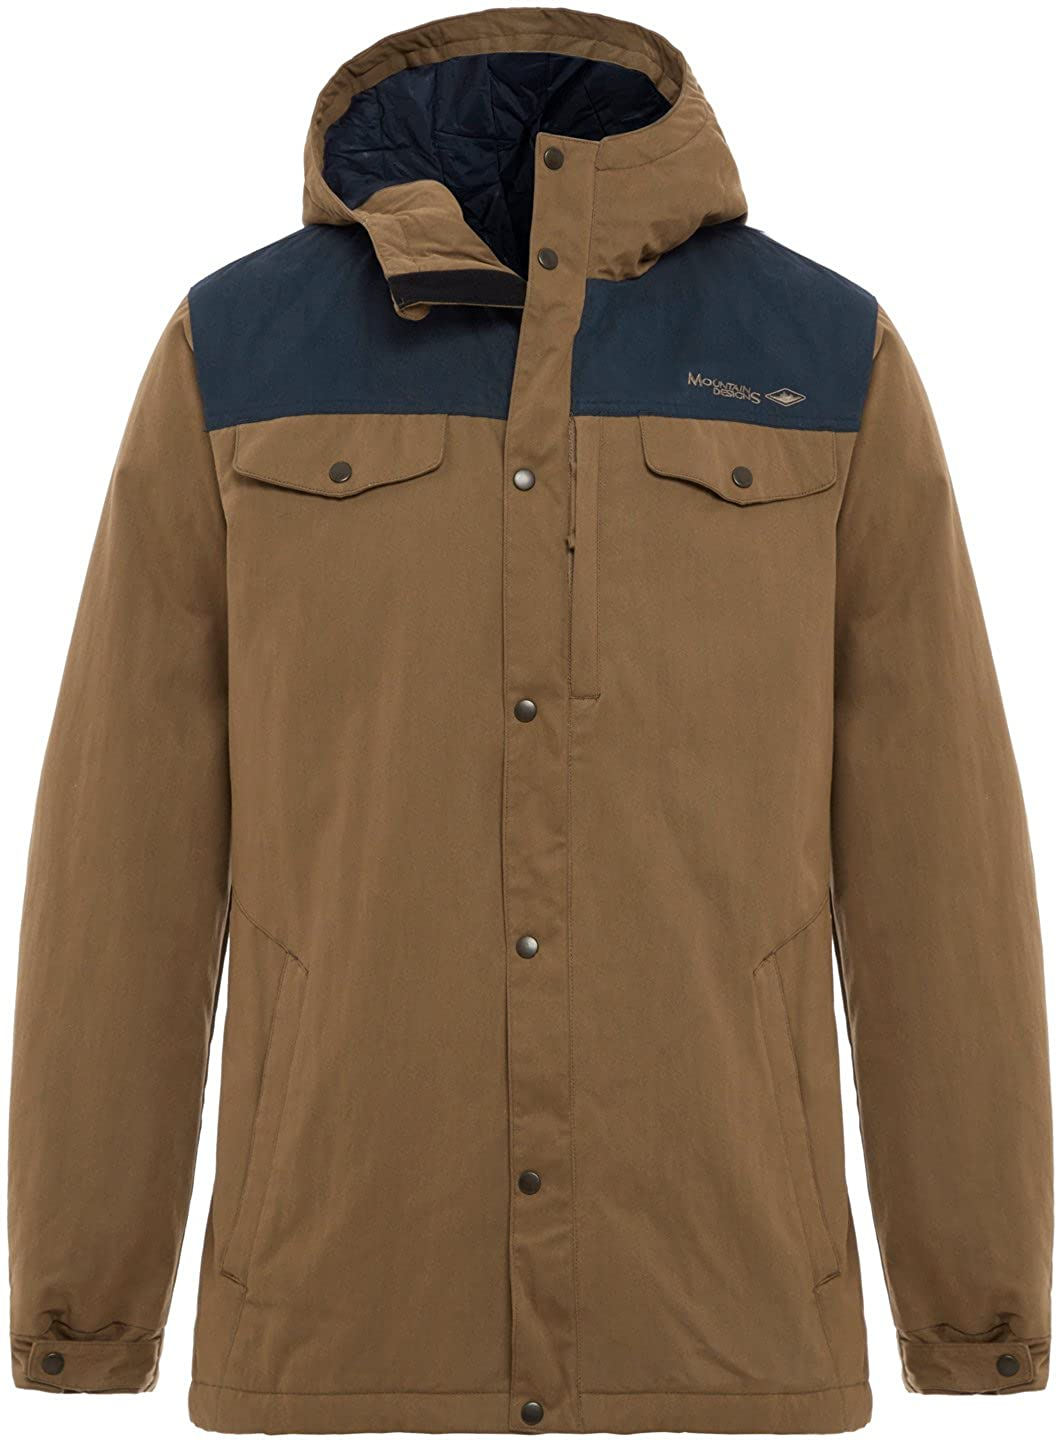 Amazon.com: Mountain Designs Mens Barrington Insulated ...